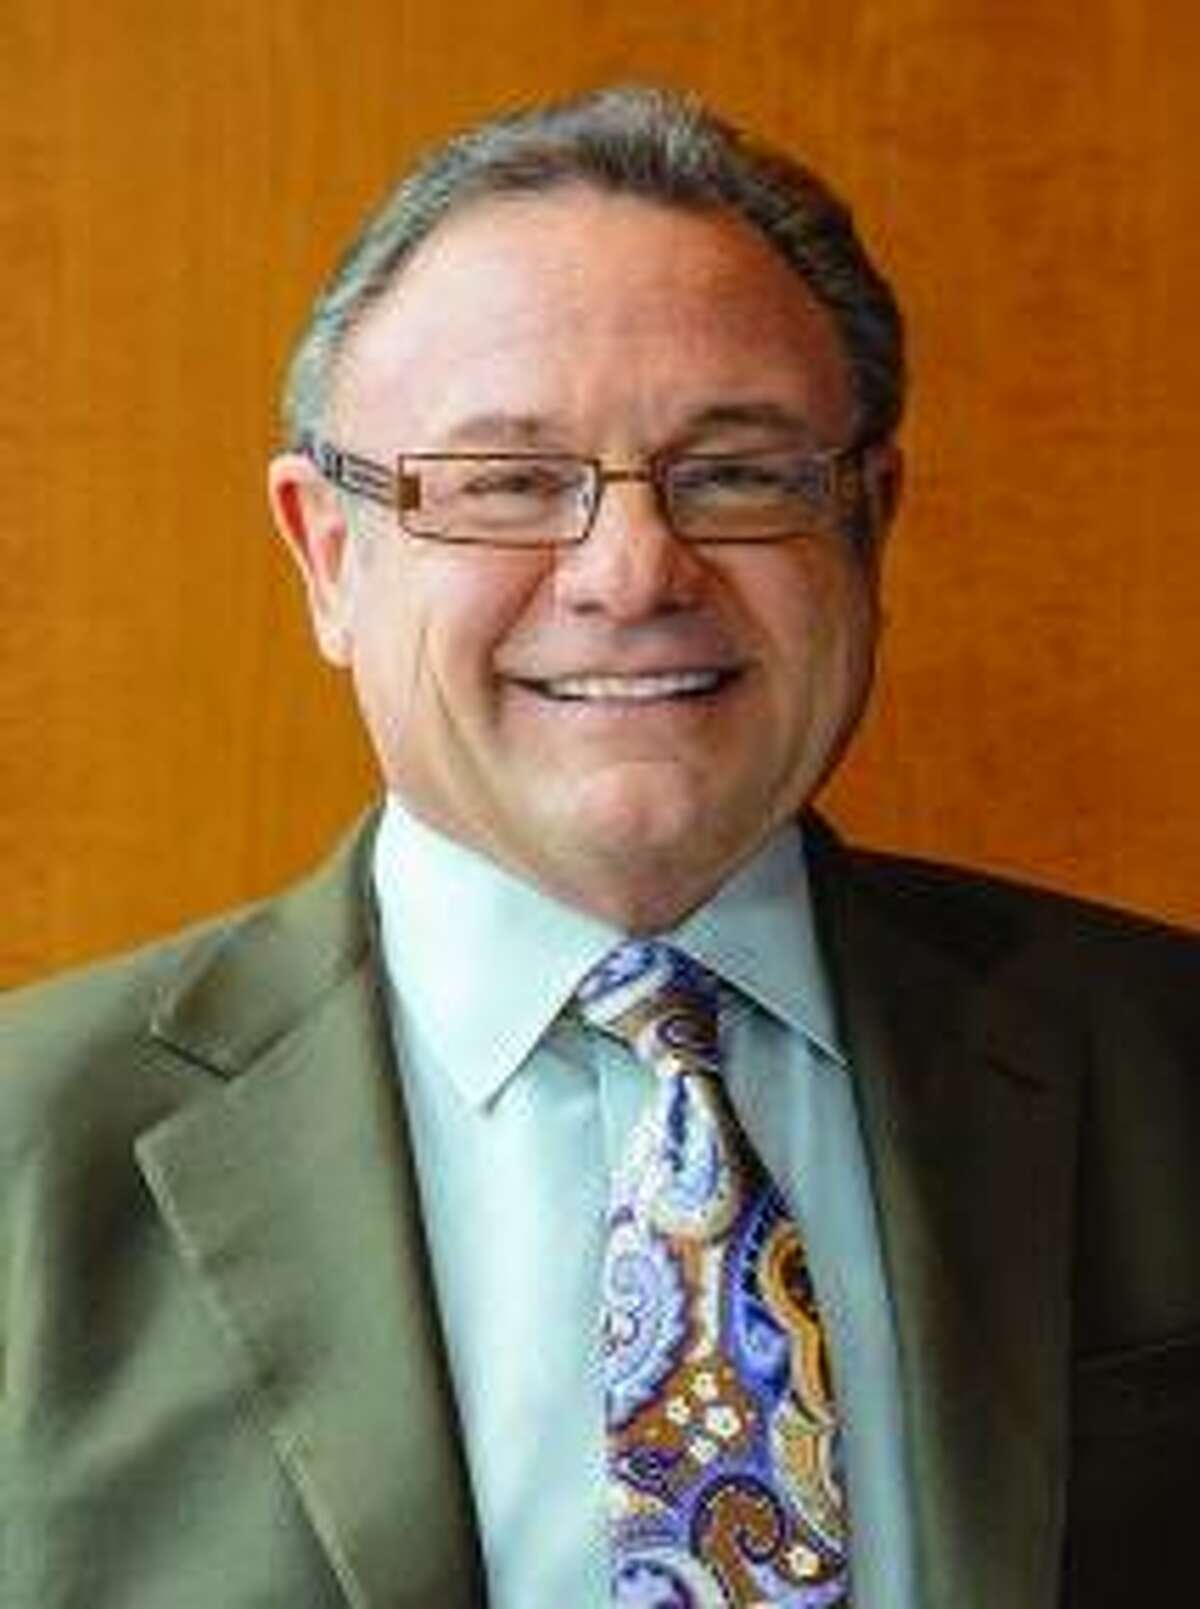 Dr. M. Ray Perryman is president and CEO of The Perryman Group.